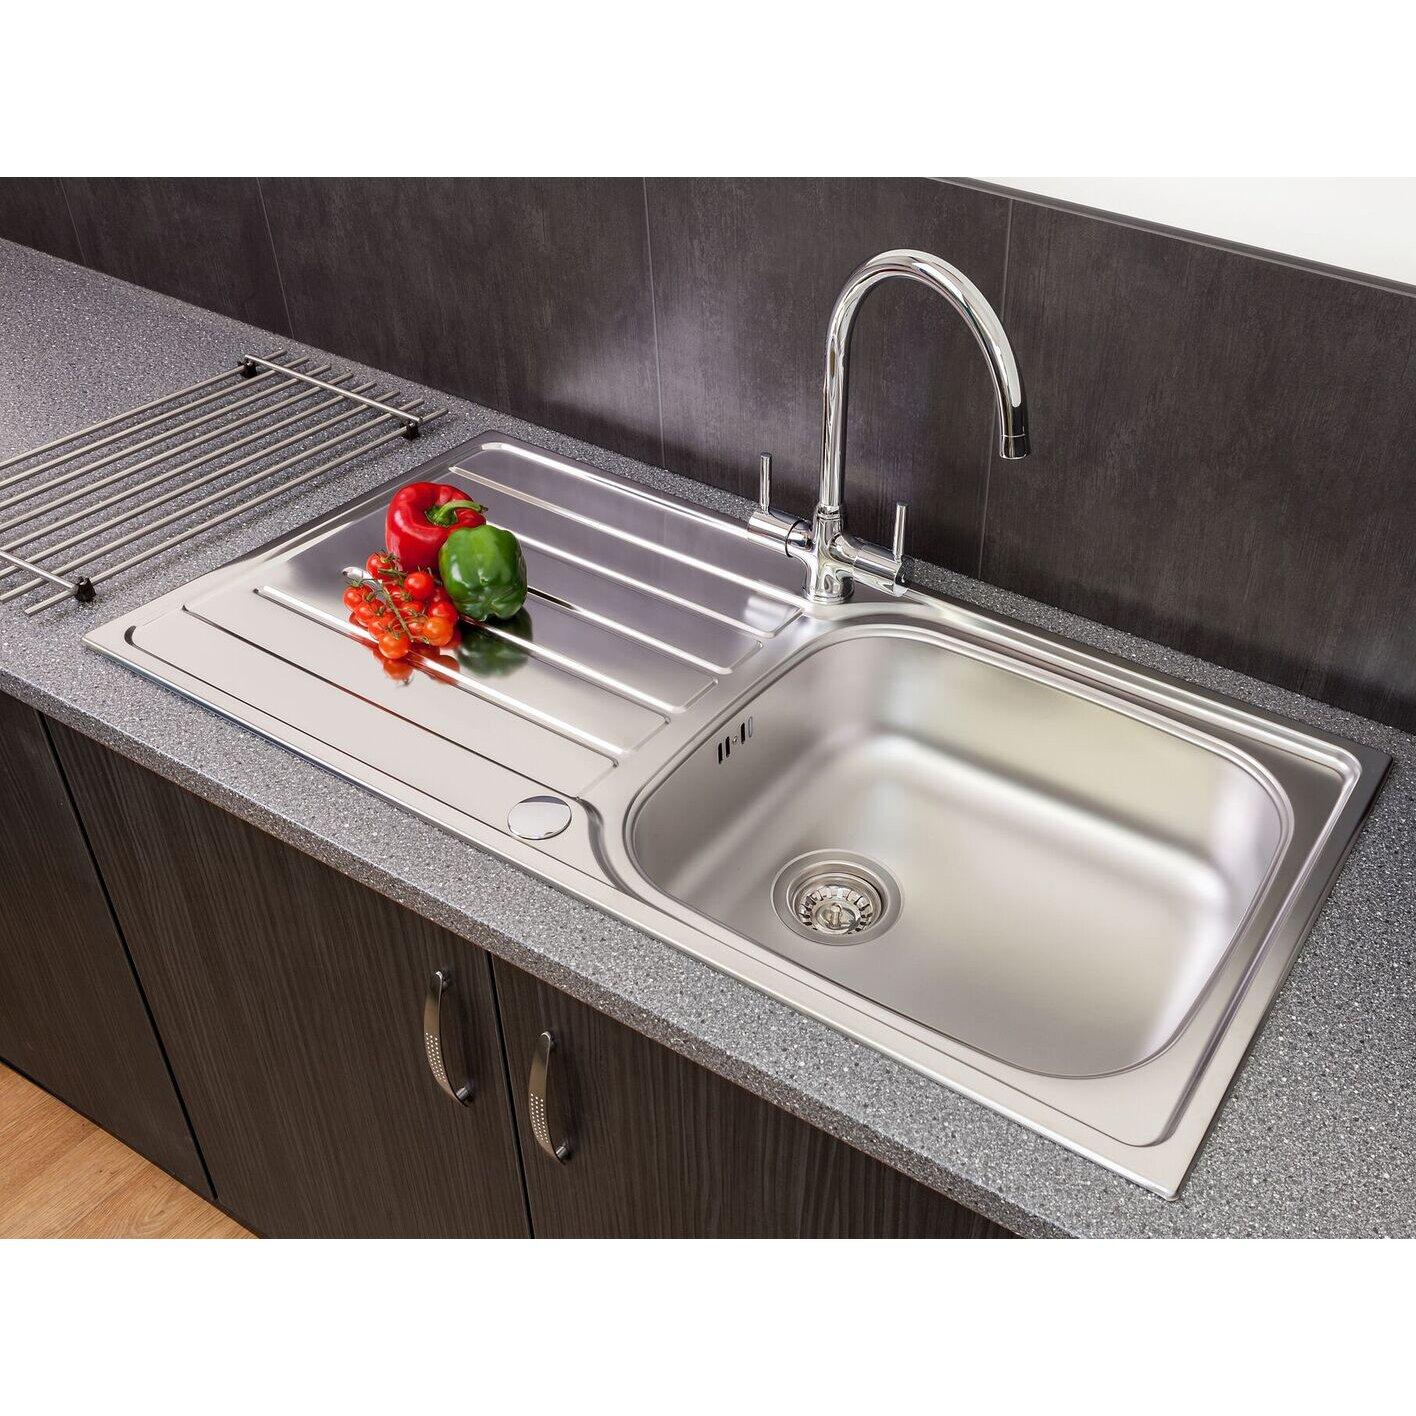 50cm single bowl inset kitchen sink with waste reviews wayfair uk